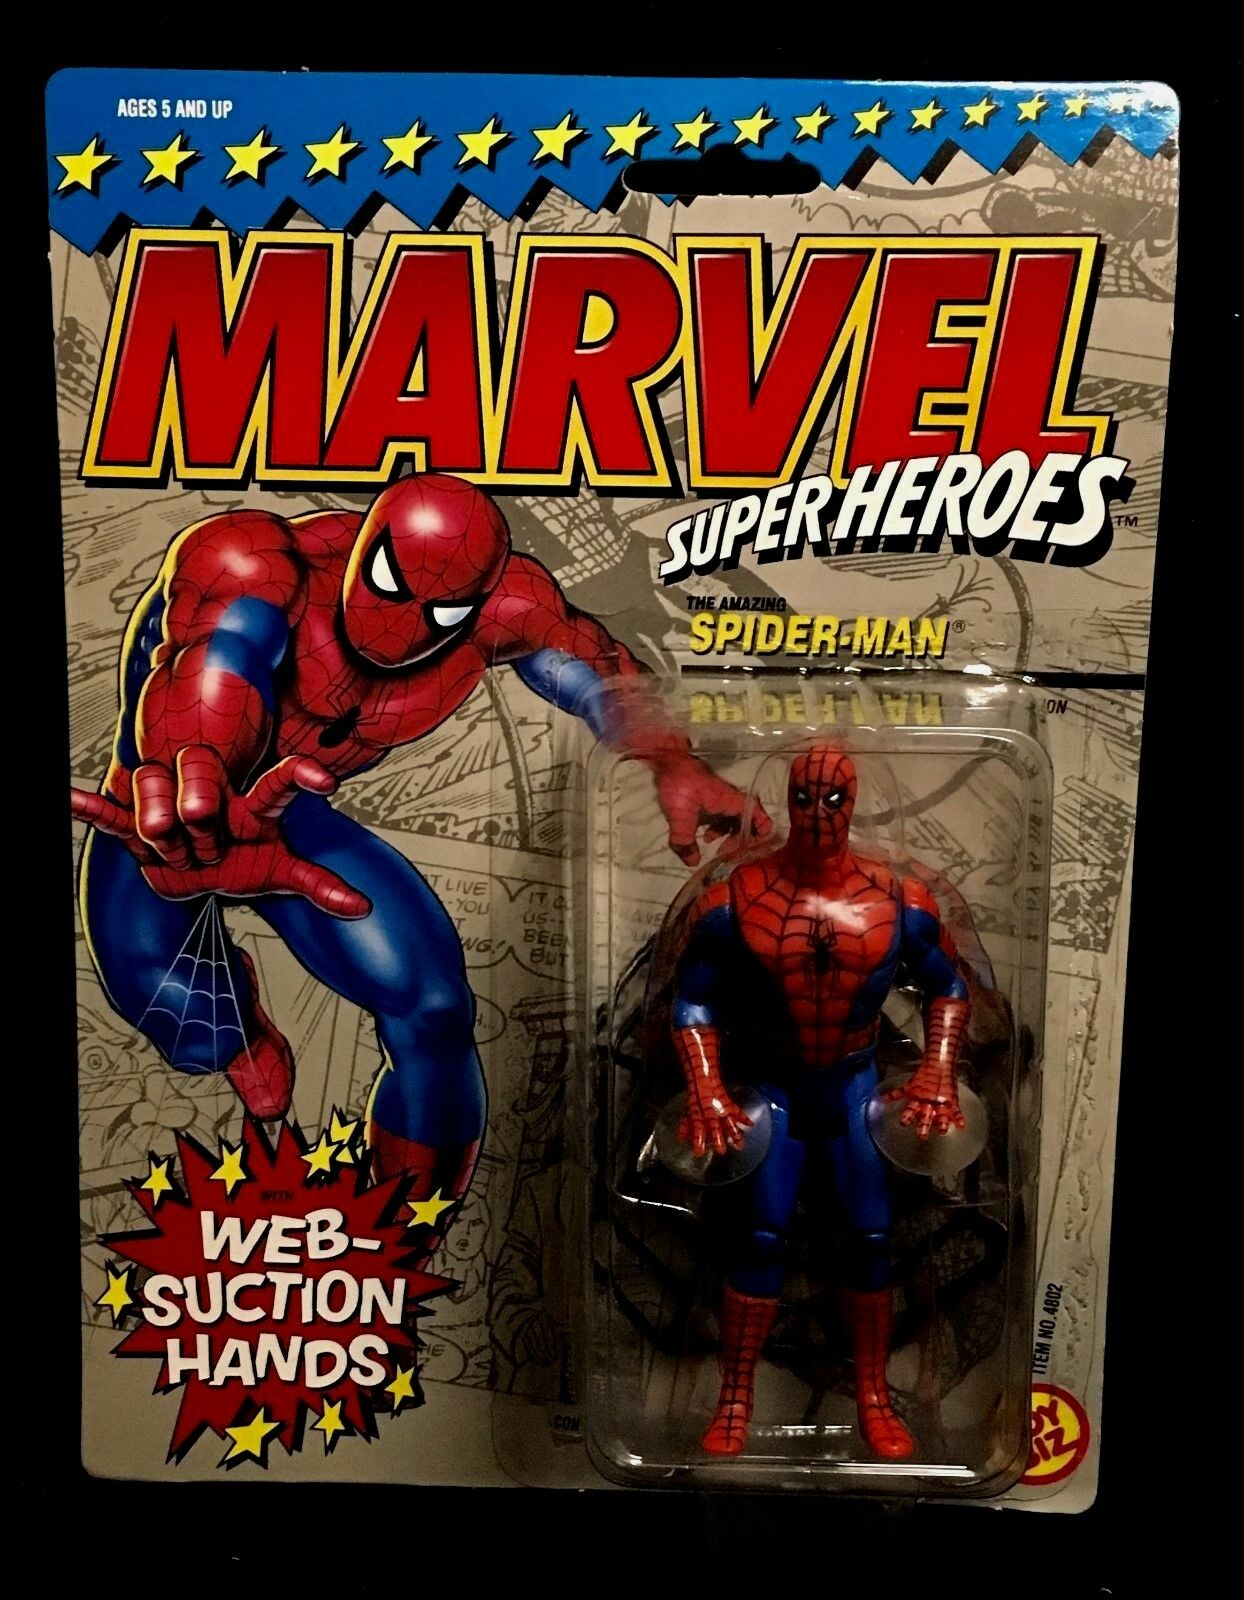 N.Mint Boxed Toy Biz MARVEL SUPERHEROES Web-Suction SPIDER-MAN ACTION FIGURE 90s